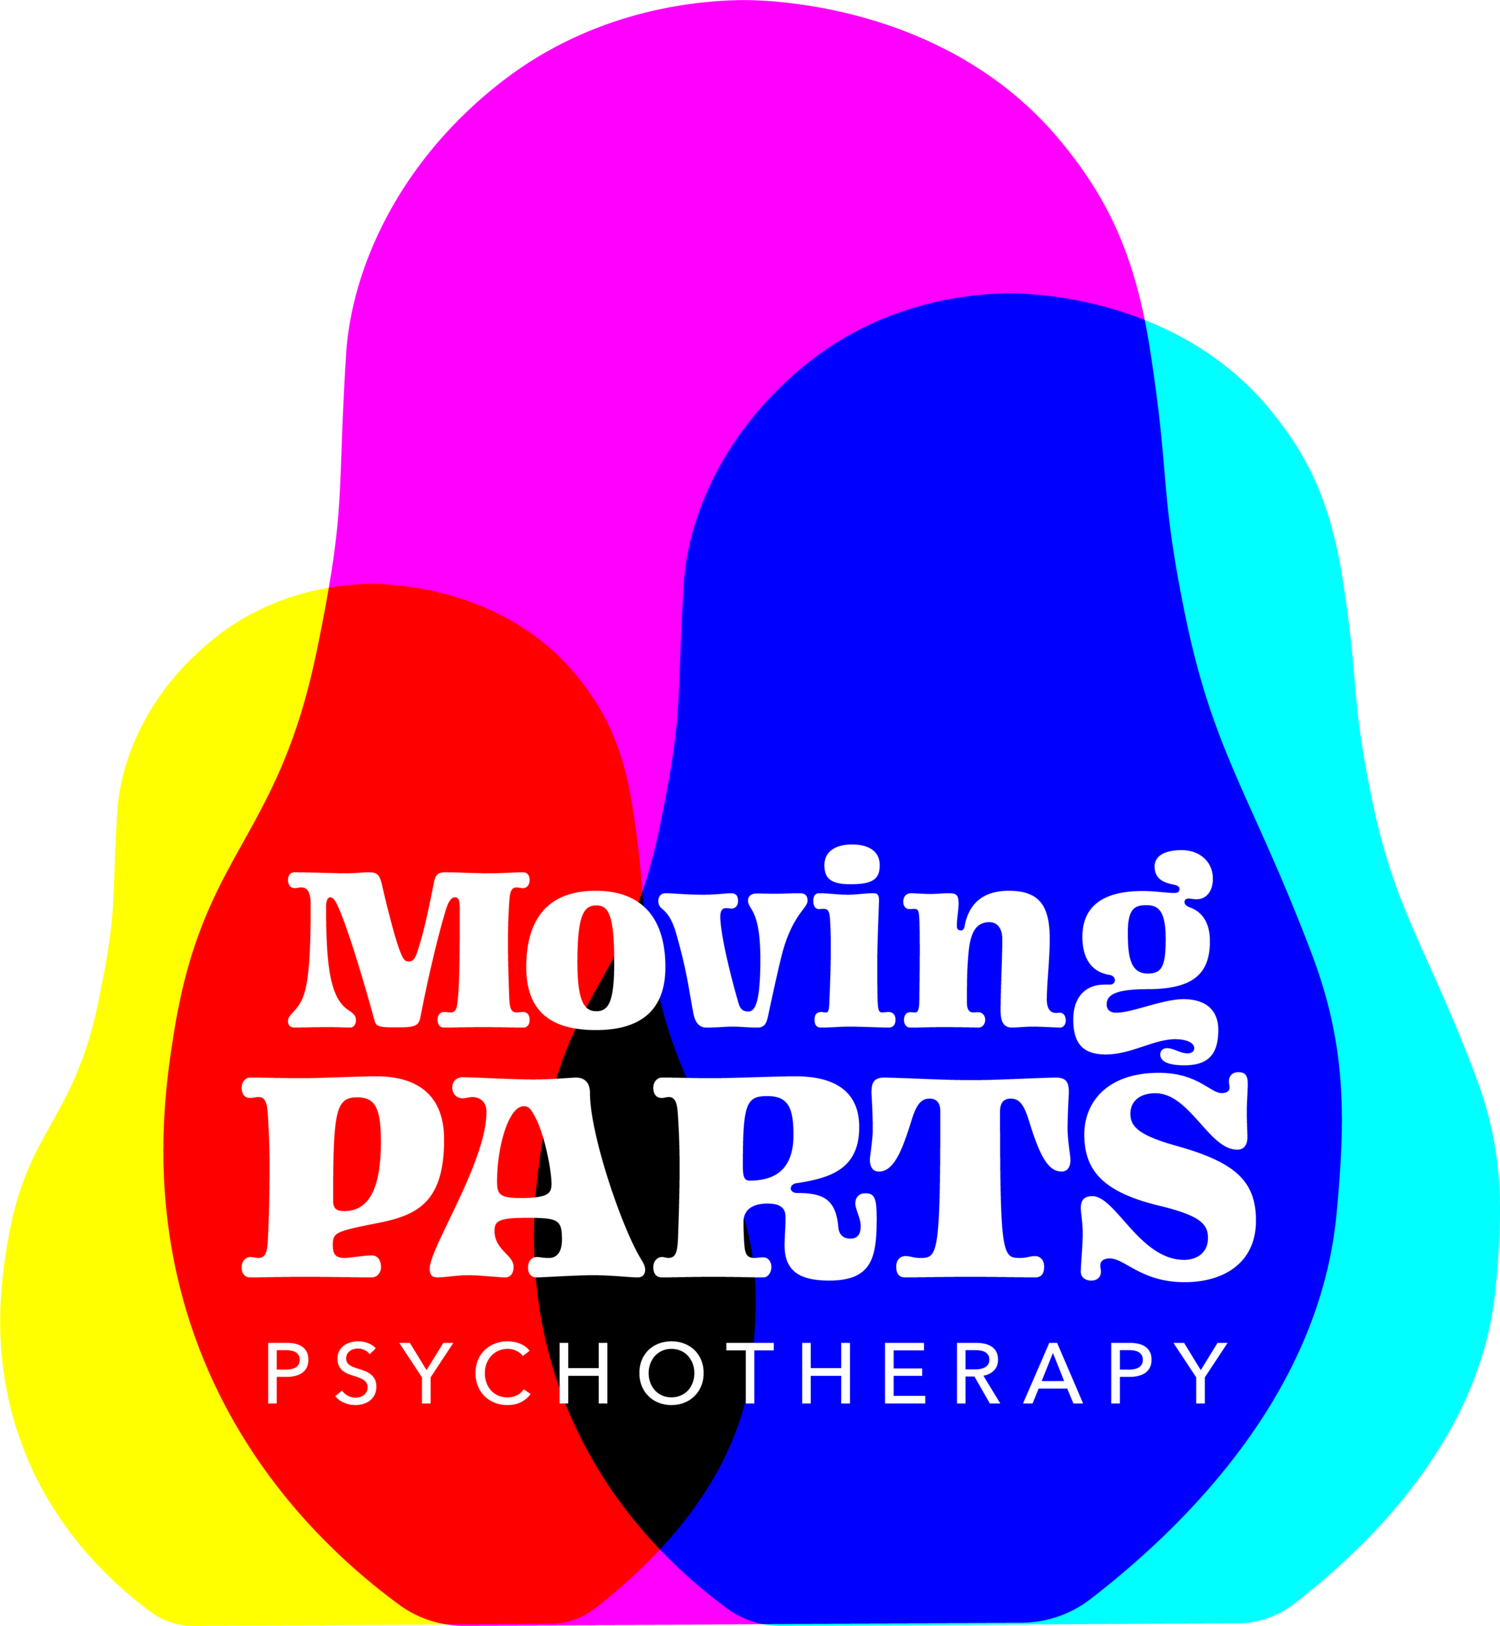 Moving Parts Psychotherapy